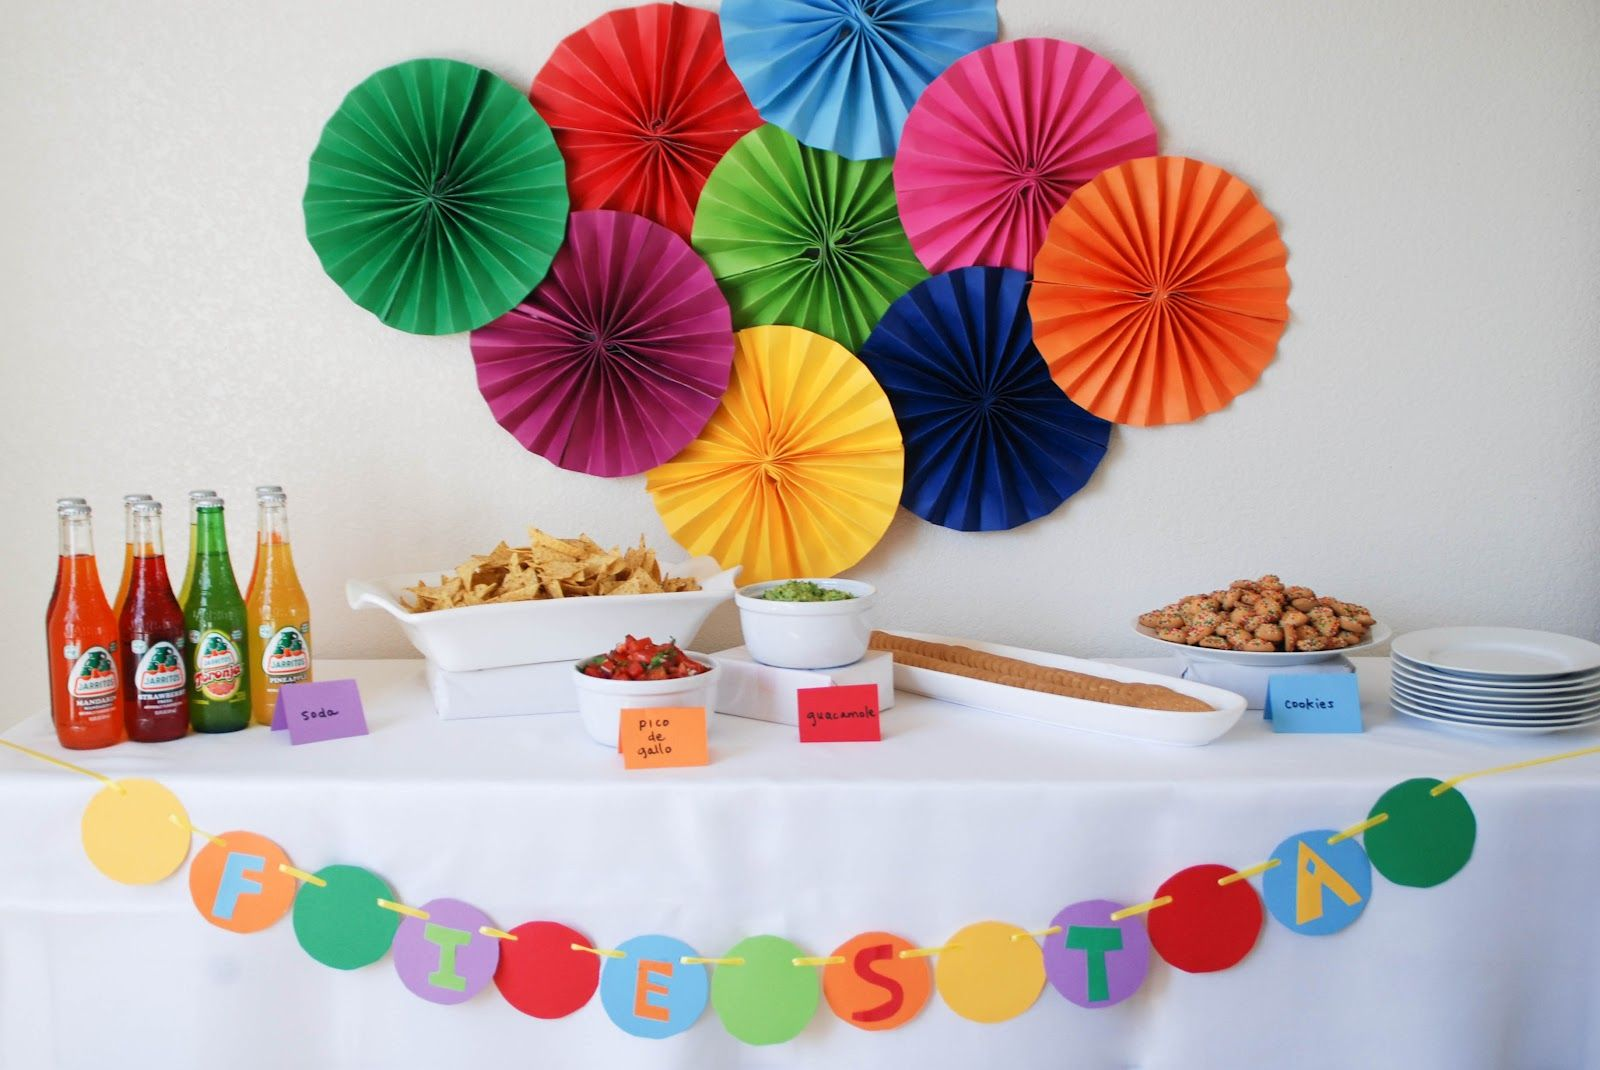 Diy cinco de mayo decorations cinco de mayo pinterest fiesta party and cinco de mayo - Cinco de mayo party decoration ideas ...